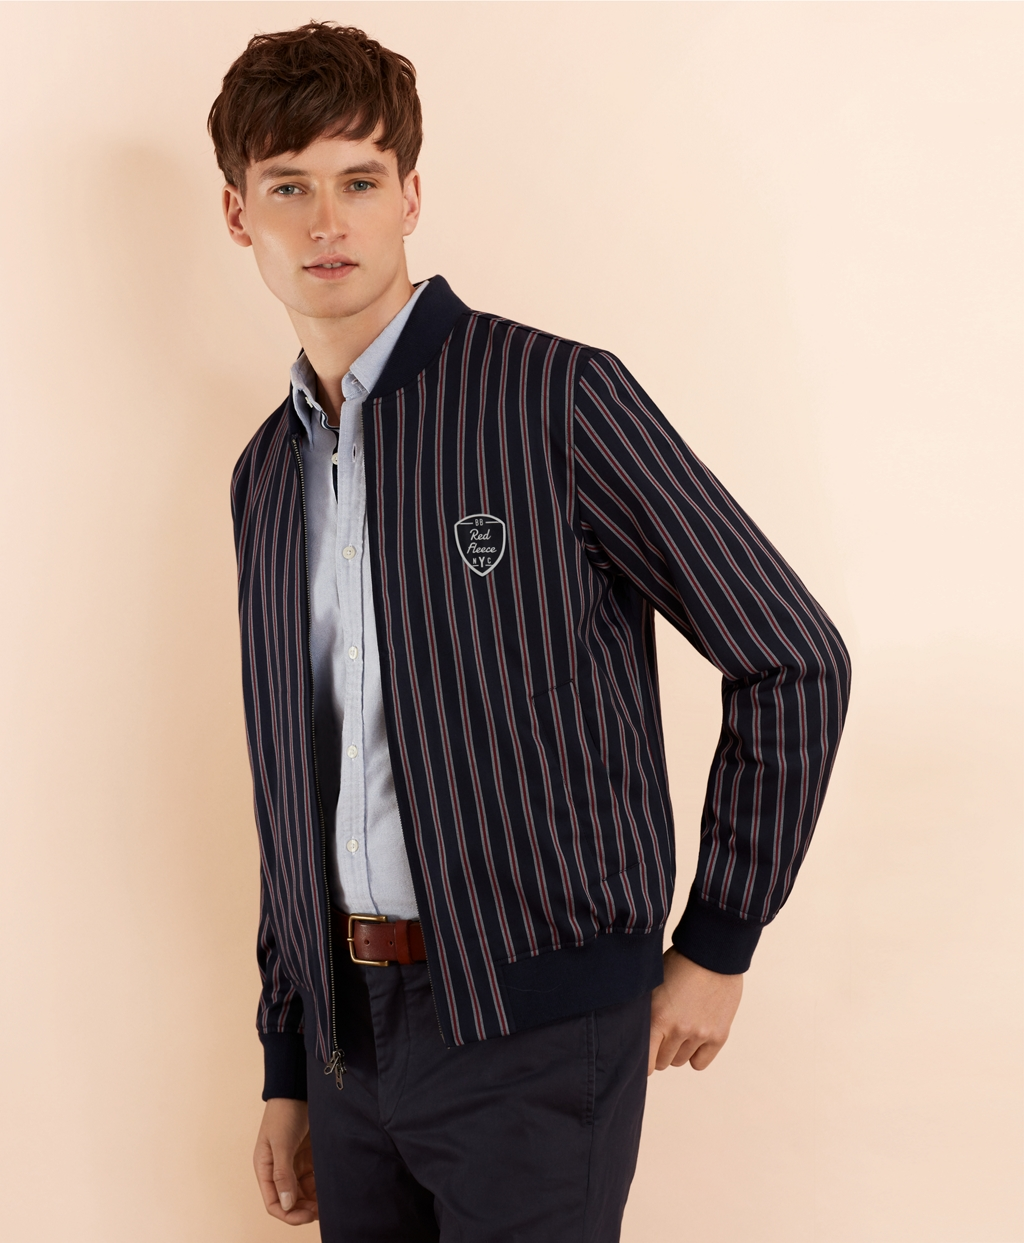 Men's Vintage Style Coats and Jackets Brooks Brothers Mens Striped Bomber Jacket $171.00 AT vintagedancer.com